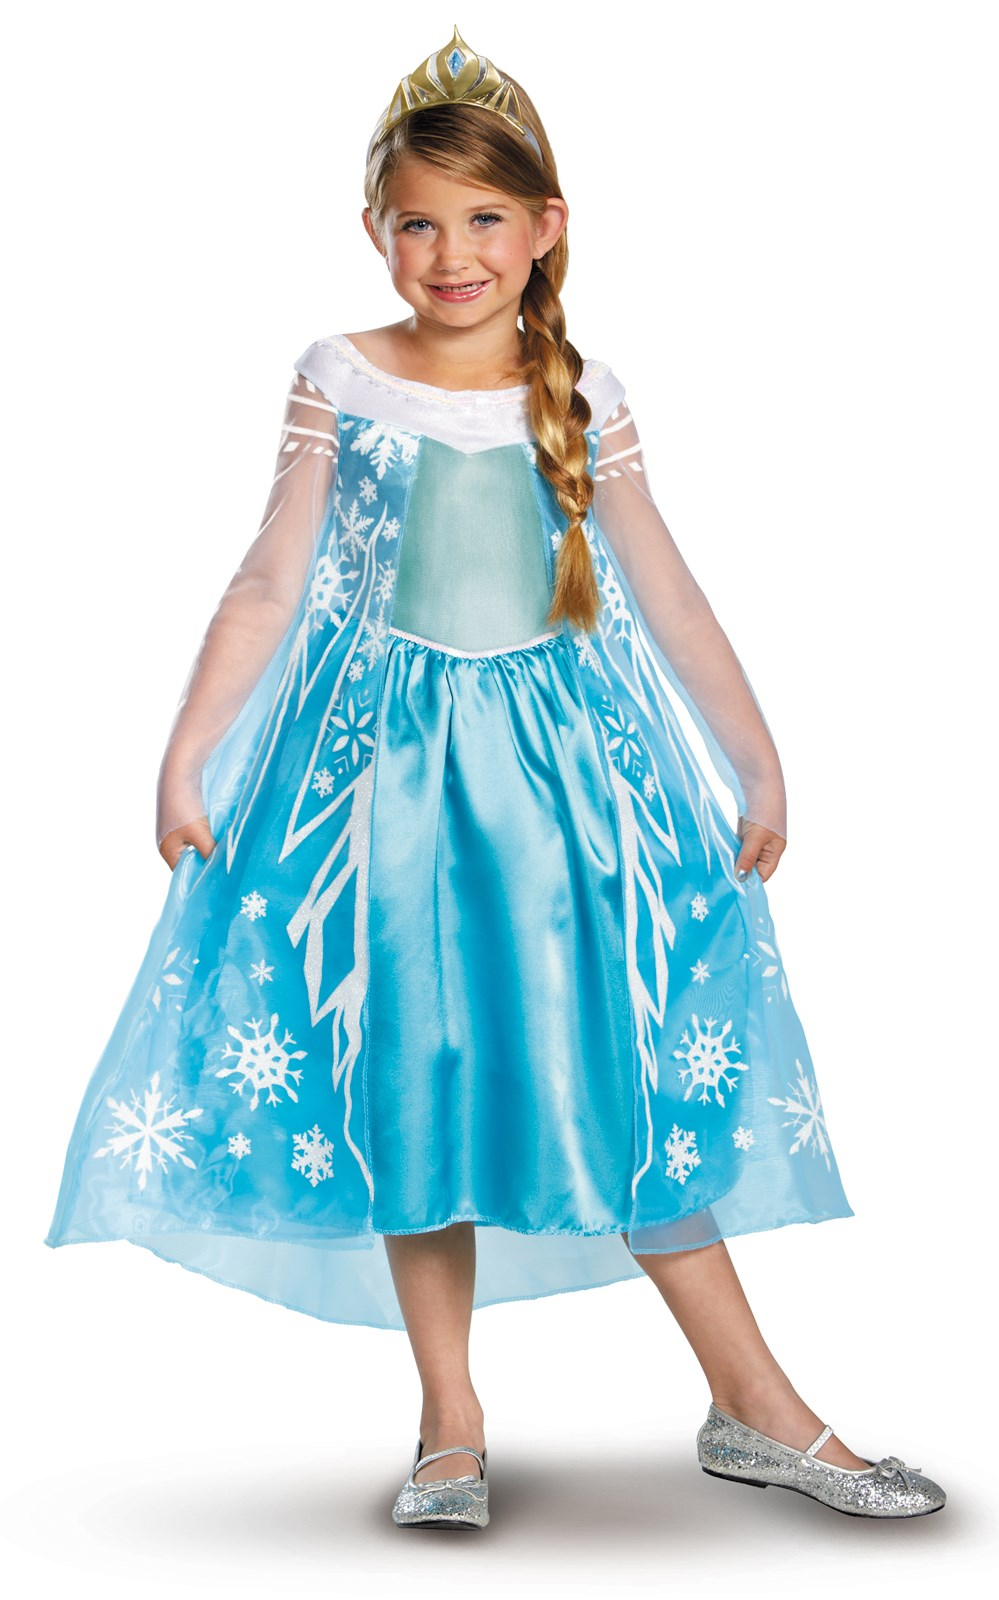 Disney Frozen Deluxe Elsa Toddler / Child Costume 3T-4T